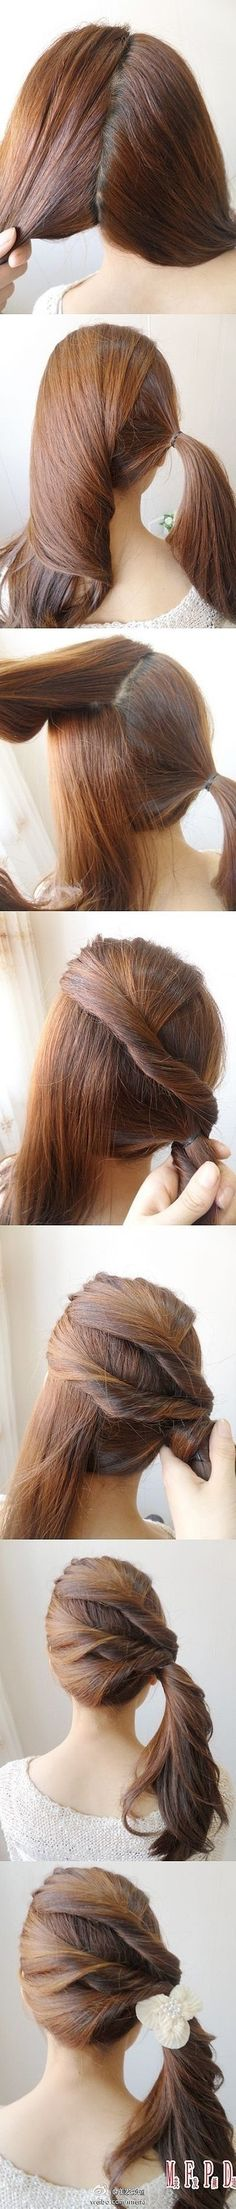 Twist updo for thick hair